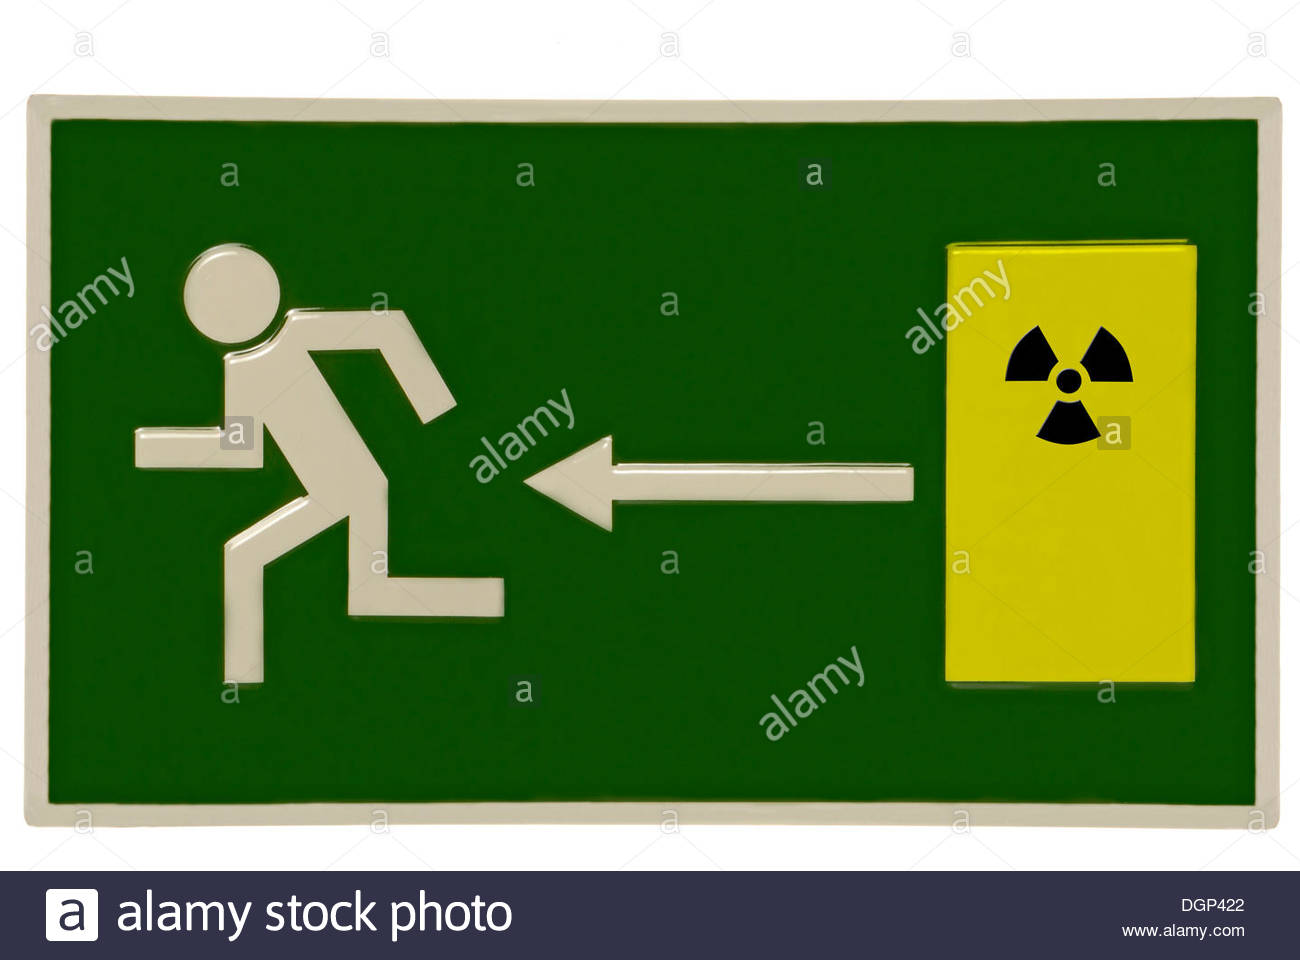 Escape Sign With Atomic Symbol, Symbolic Image For Nuclear Power.